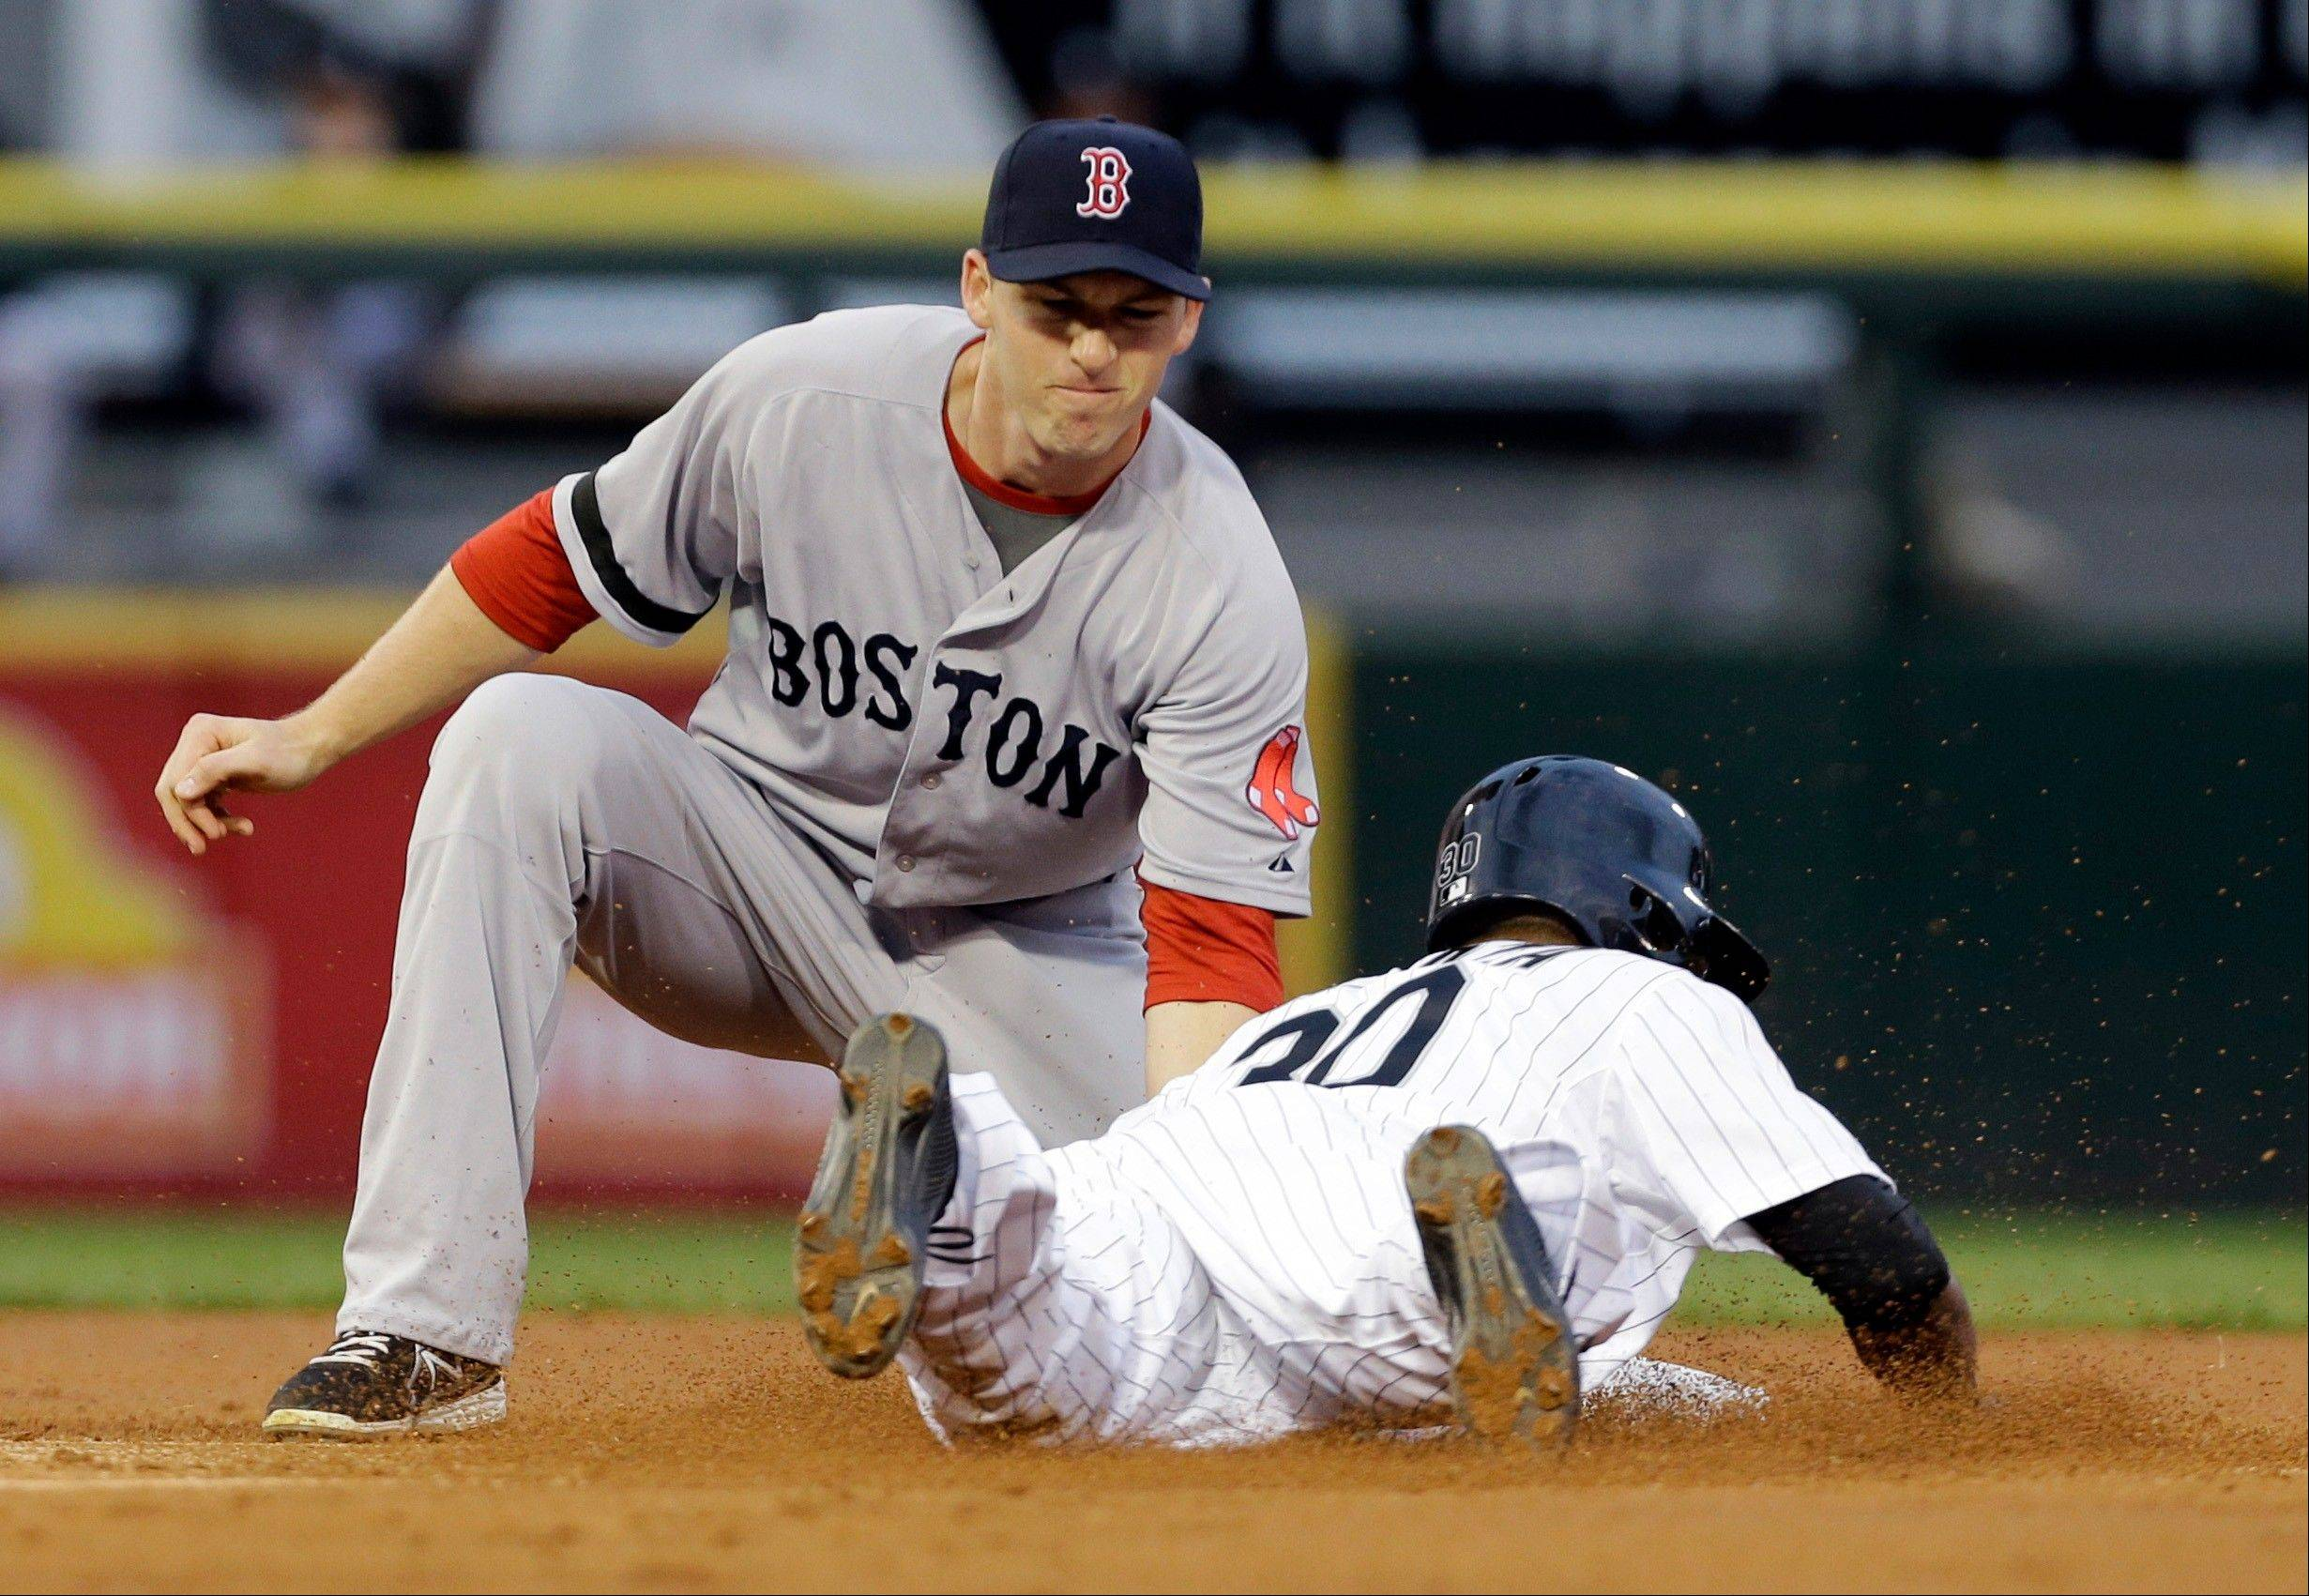 Boston Red Sox shortstop Stephen Drew, left, tags out Chicago White Sox's Alejandro De Aza during the first inning of a baseball game in Chicago, Wednesday, May 22, 2013.